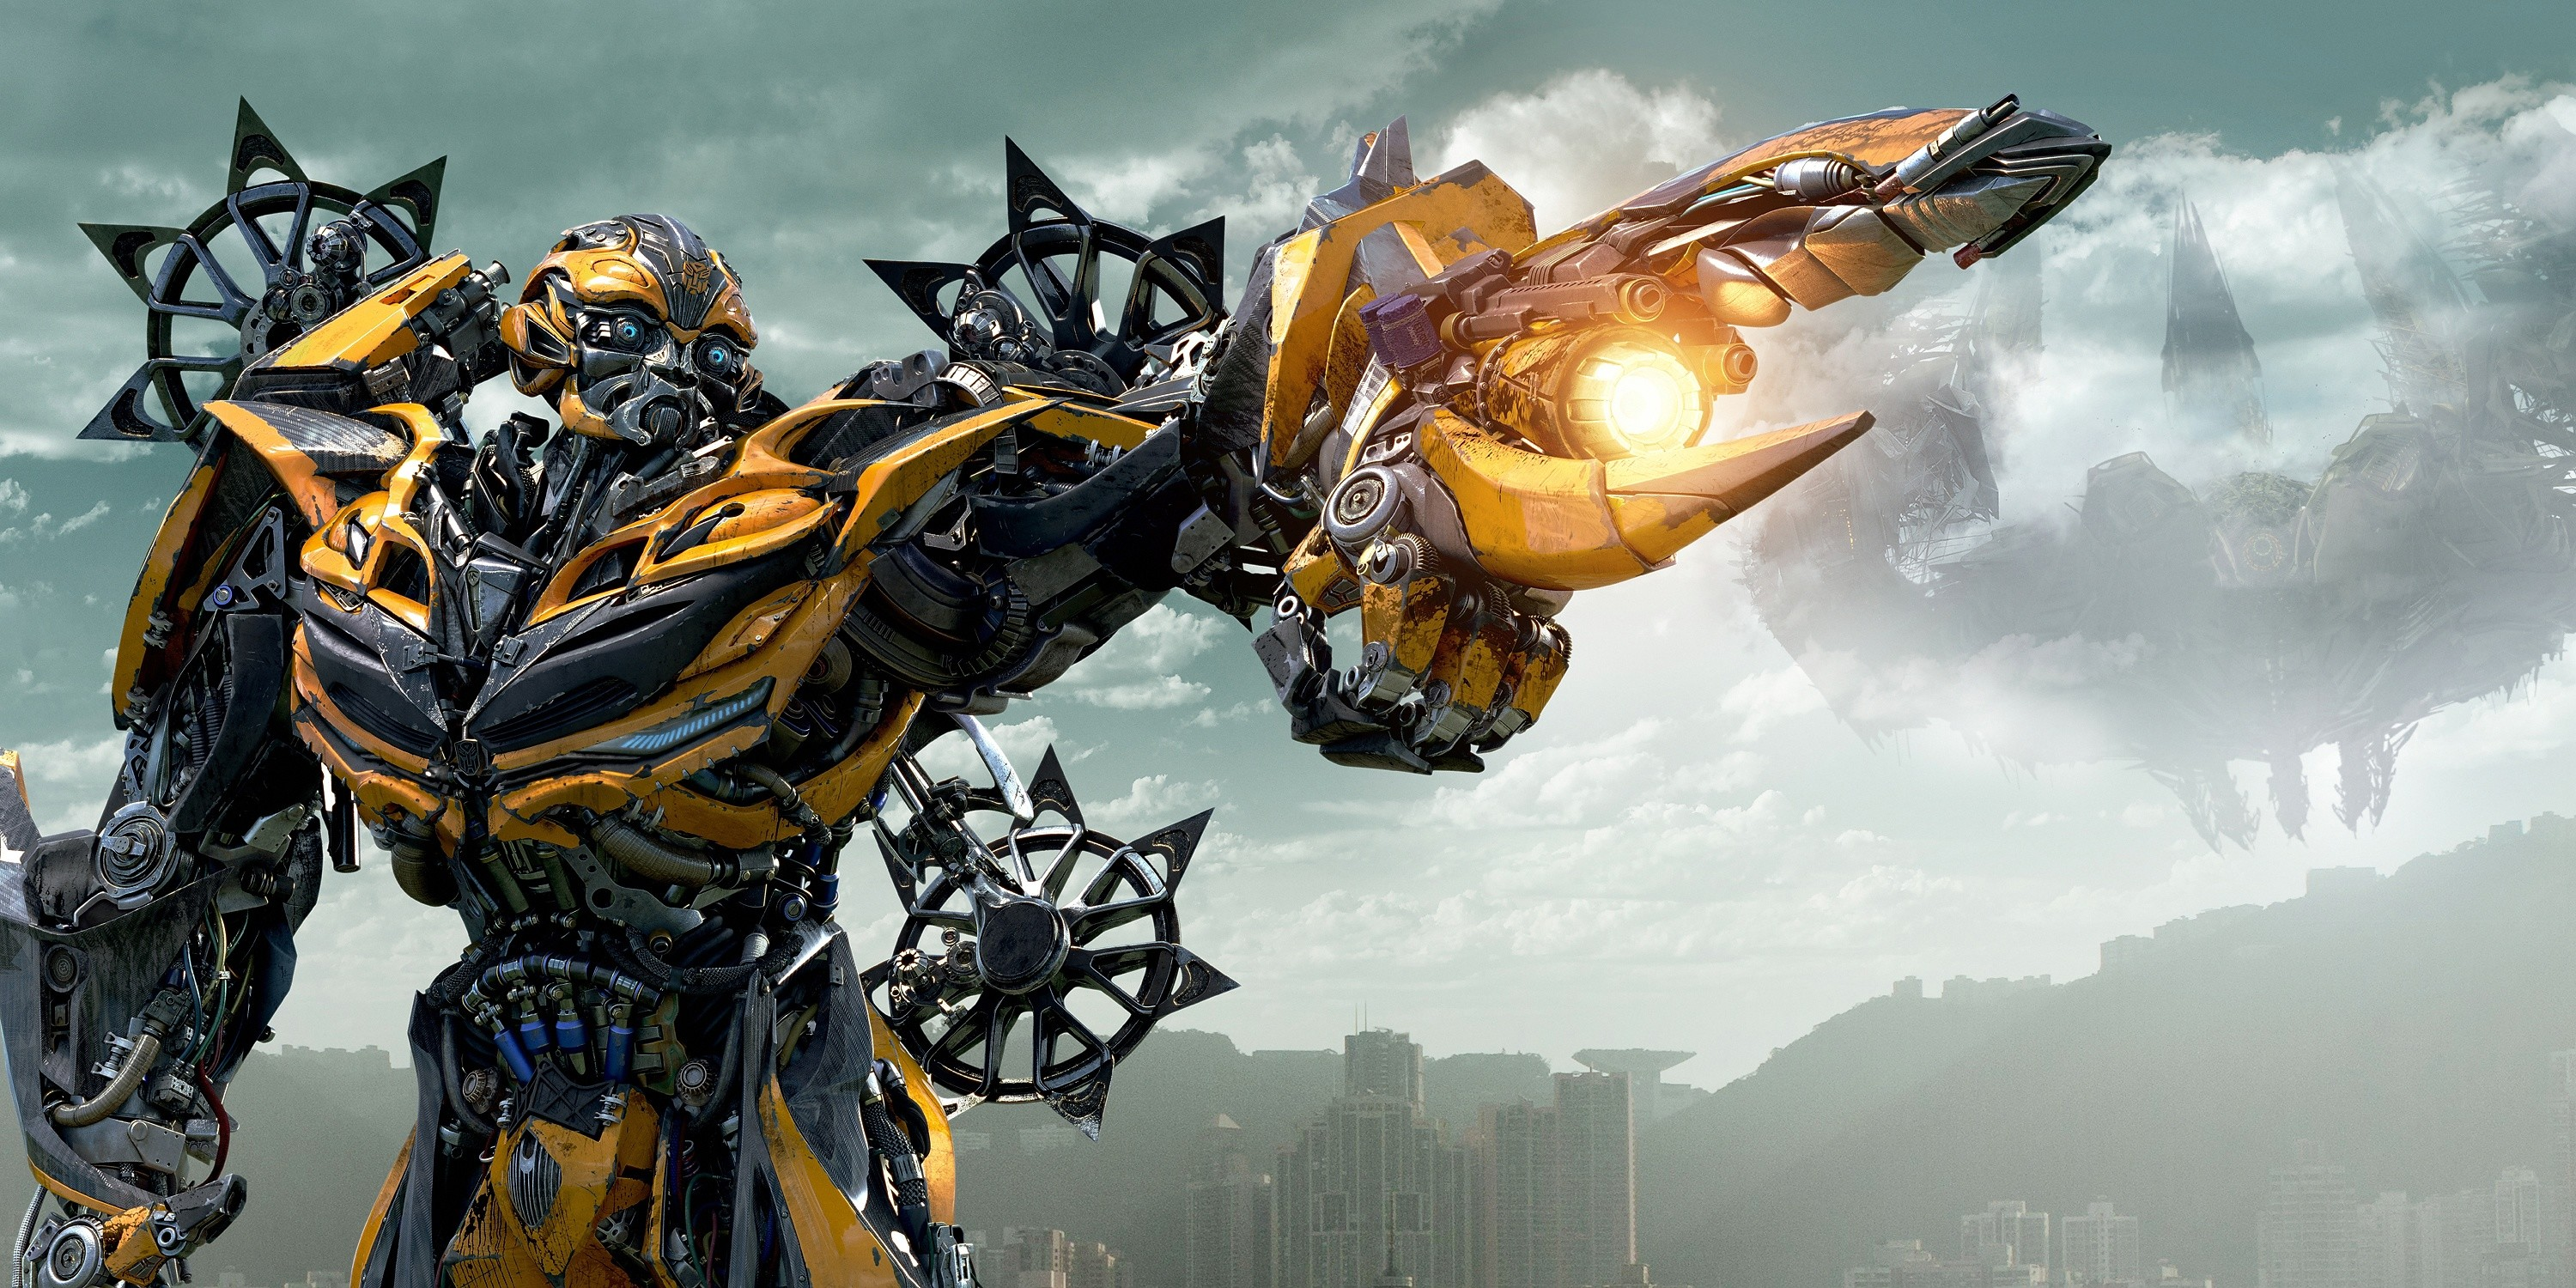 Res: 3000x1500, Bumblebee Transformers 4 Age Of Extinction Free Wallpaper HD Uploaded by  DesktopWalls